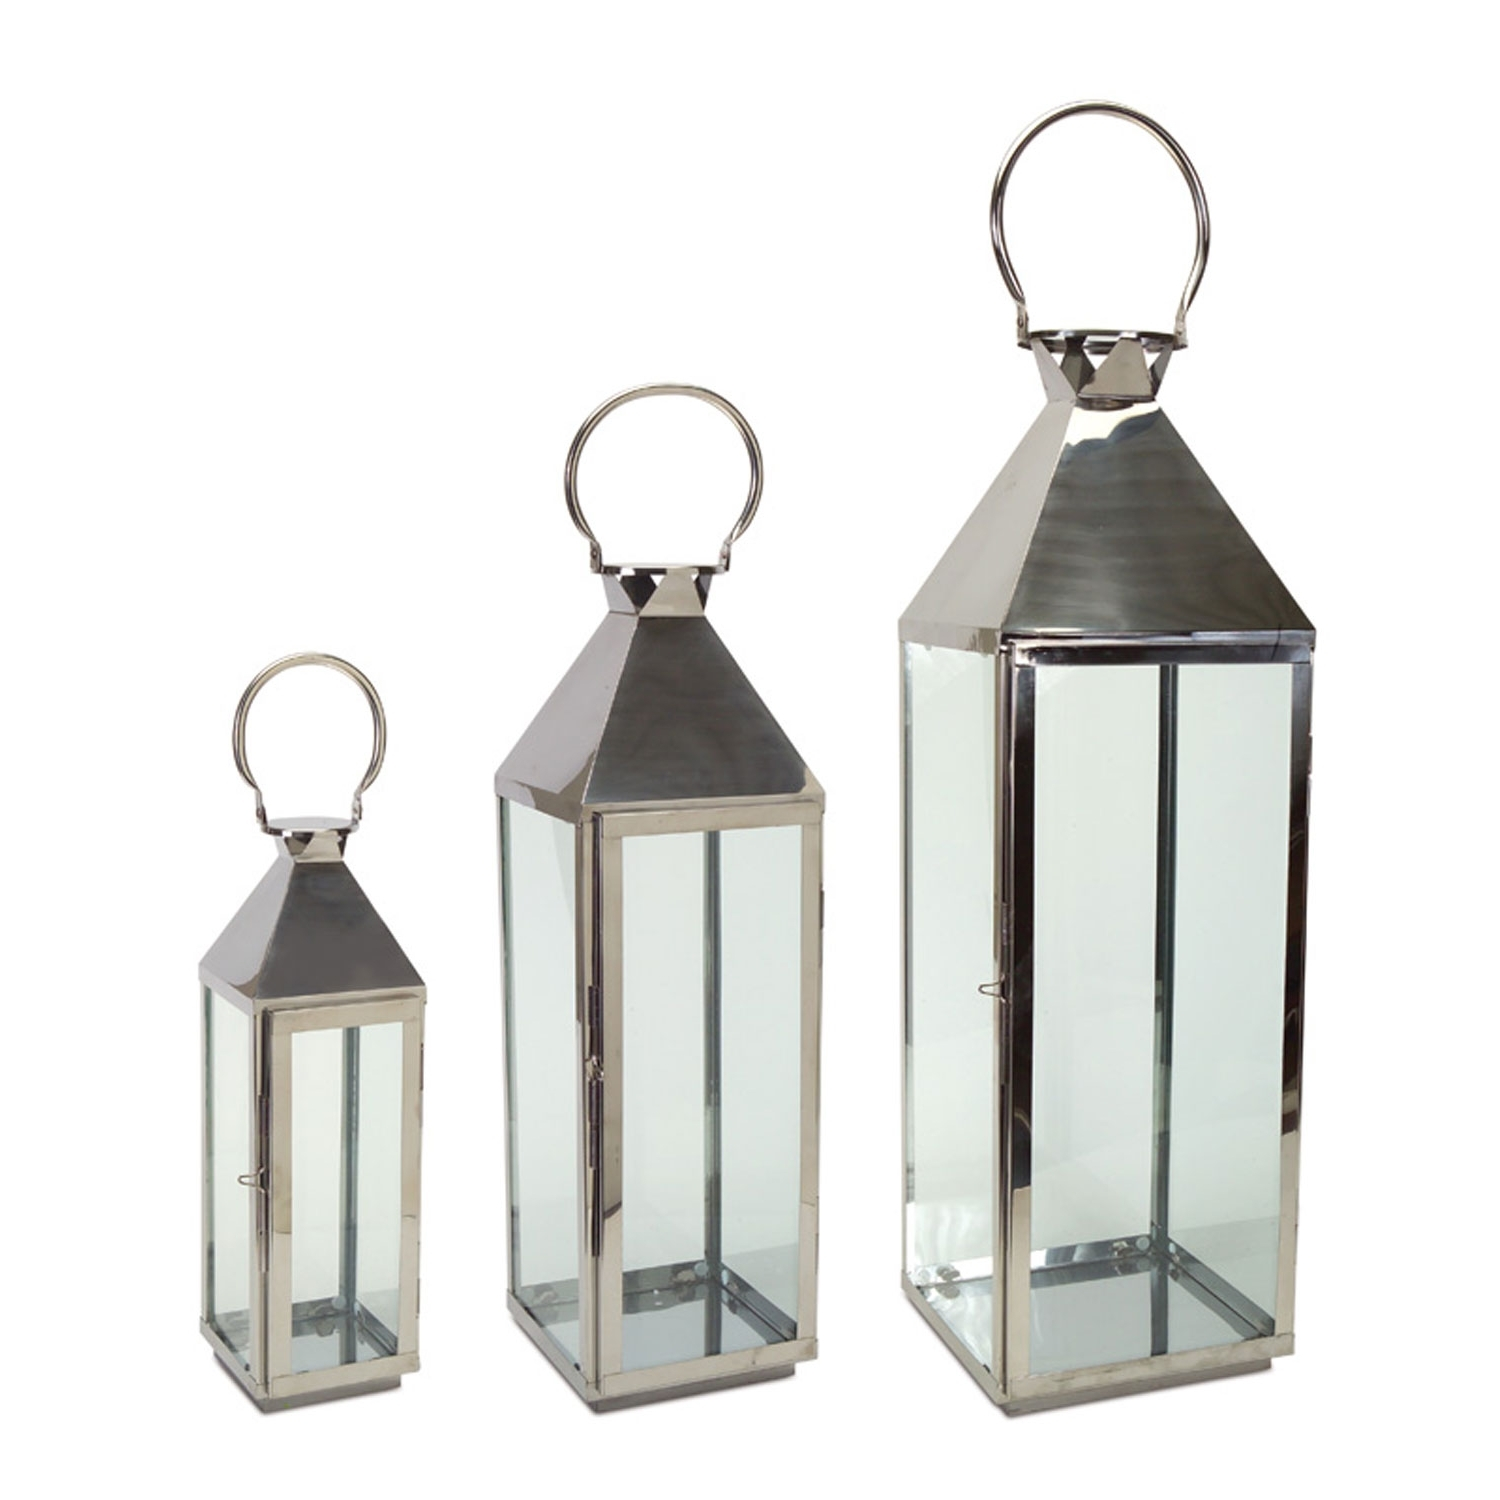 2018 Outdoor Hanging Lanterns Candles Throughout Candle Lanterns, Outdoor Hanging Lanterns, Decorative On Sale (View 2 of 20)